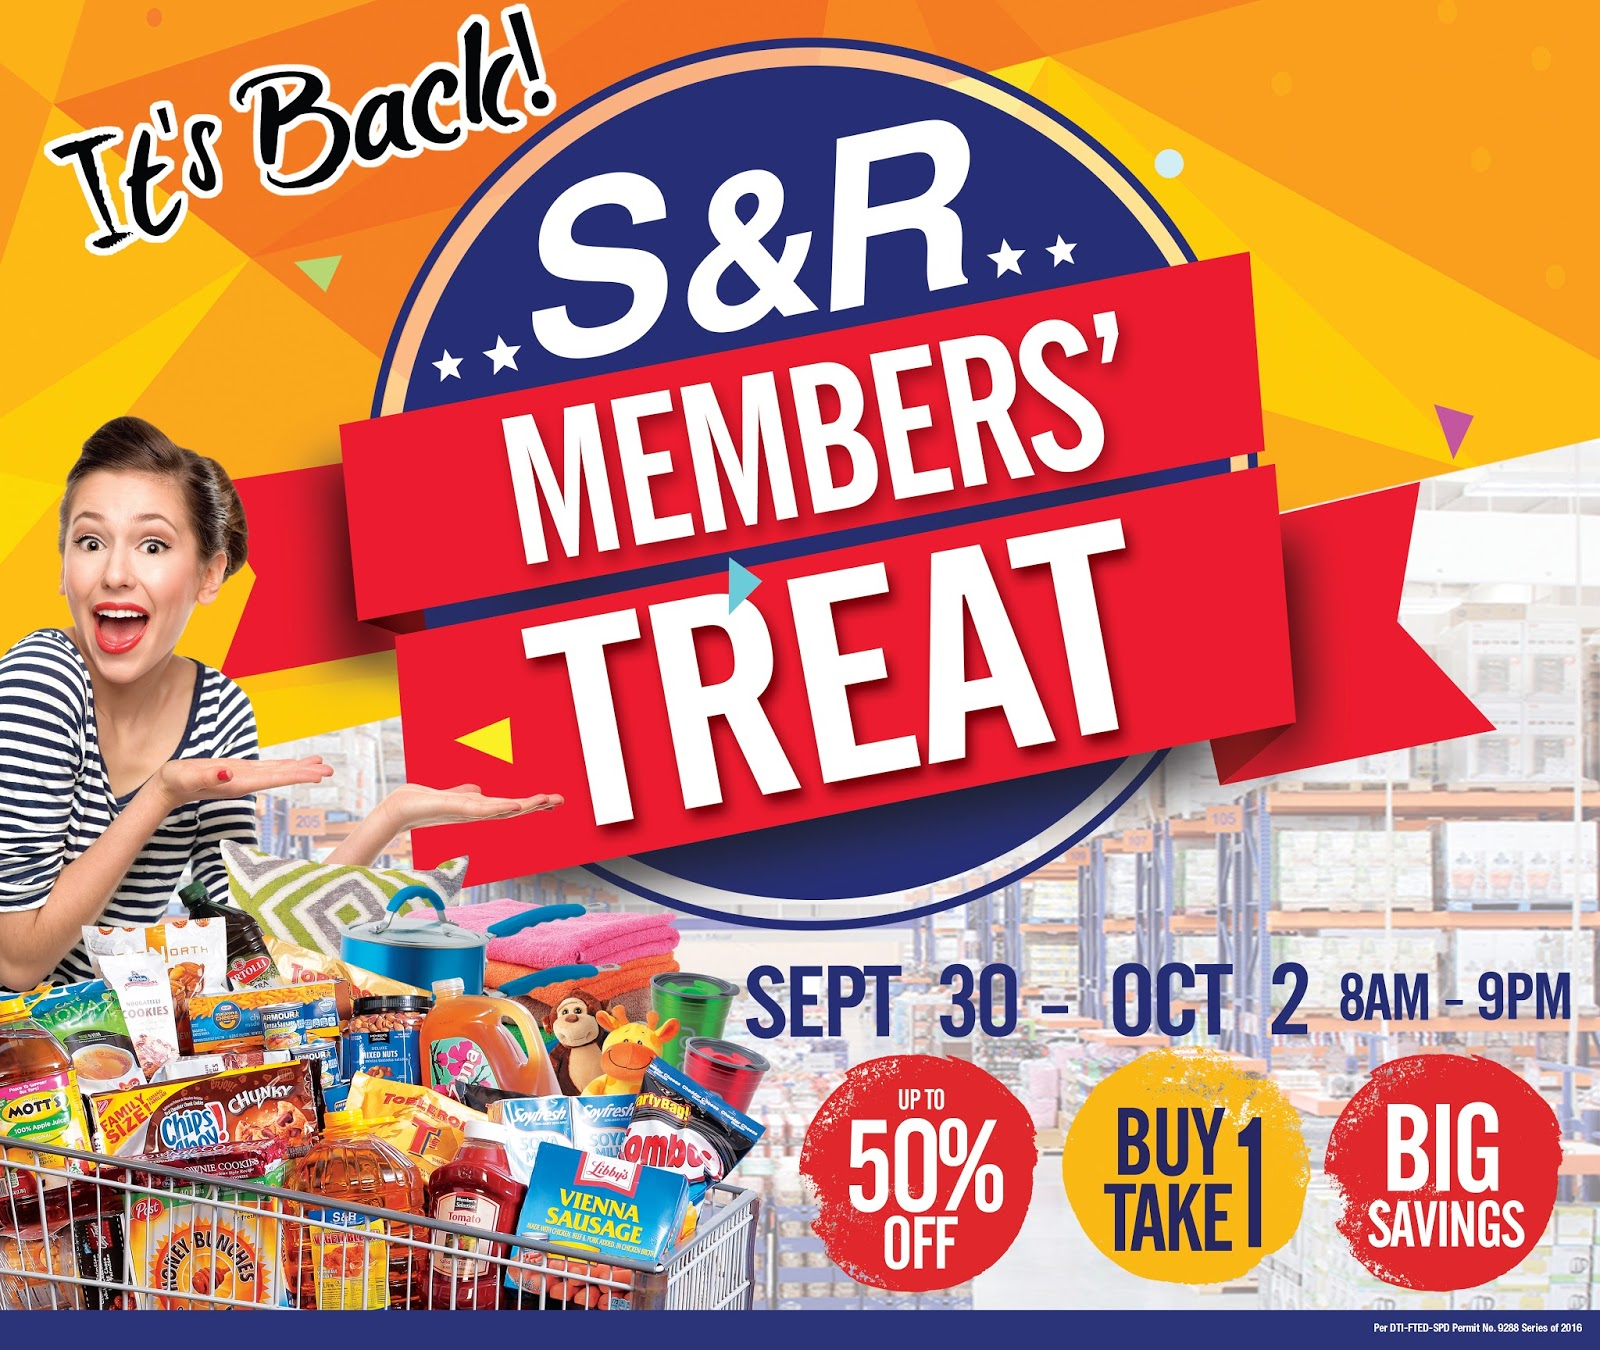 s&r members treat